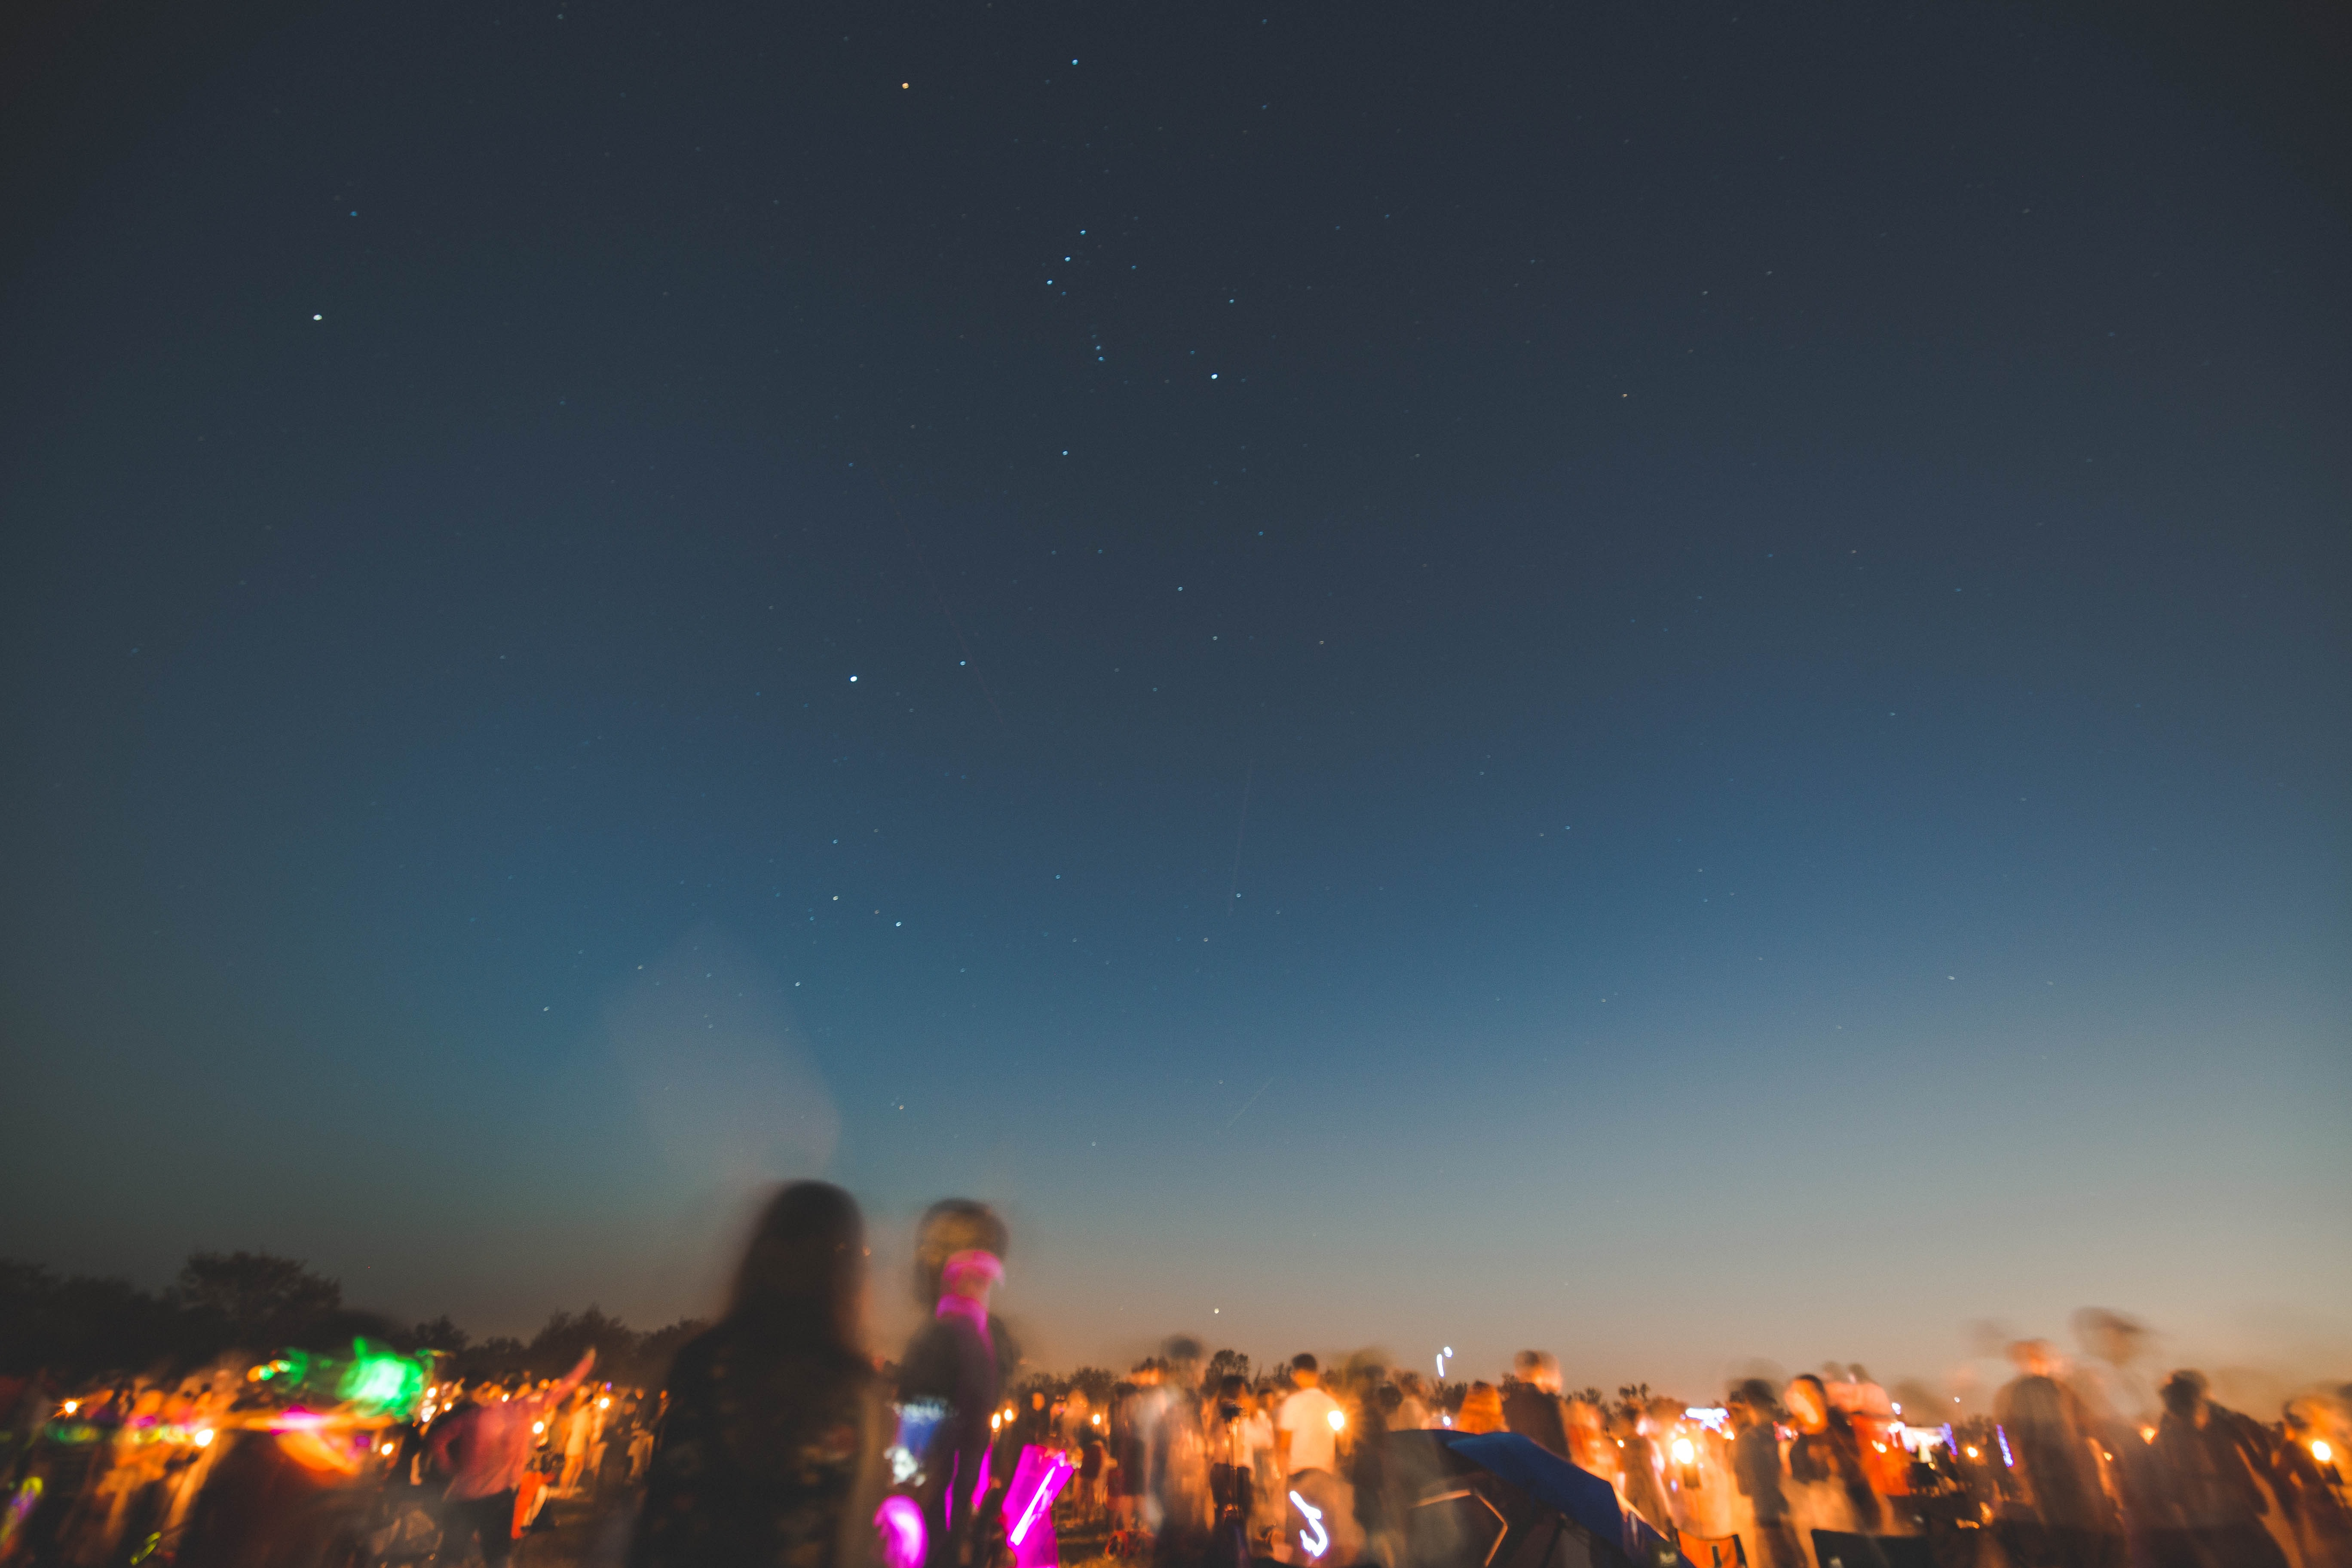 people standing on land at night time